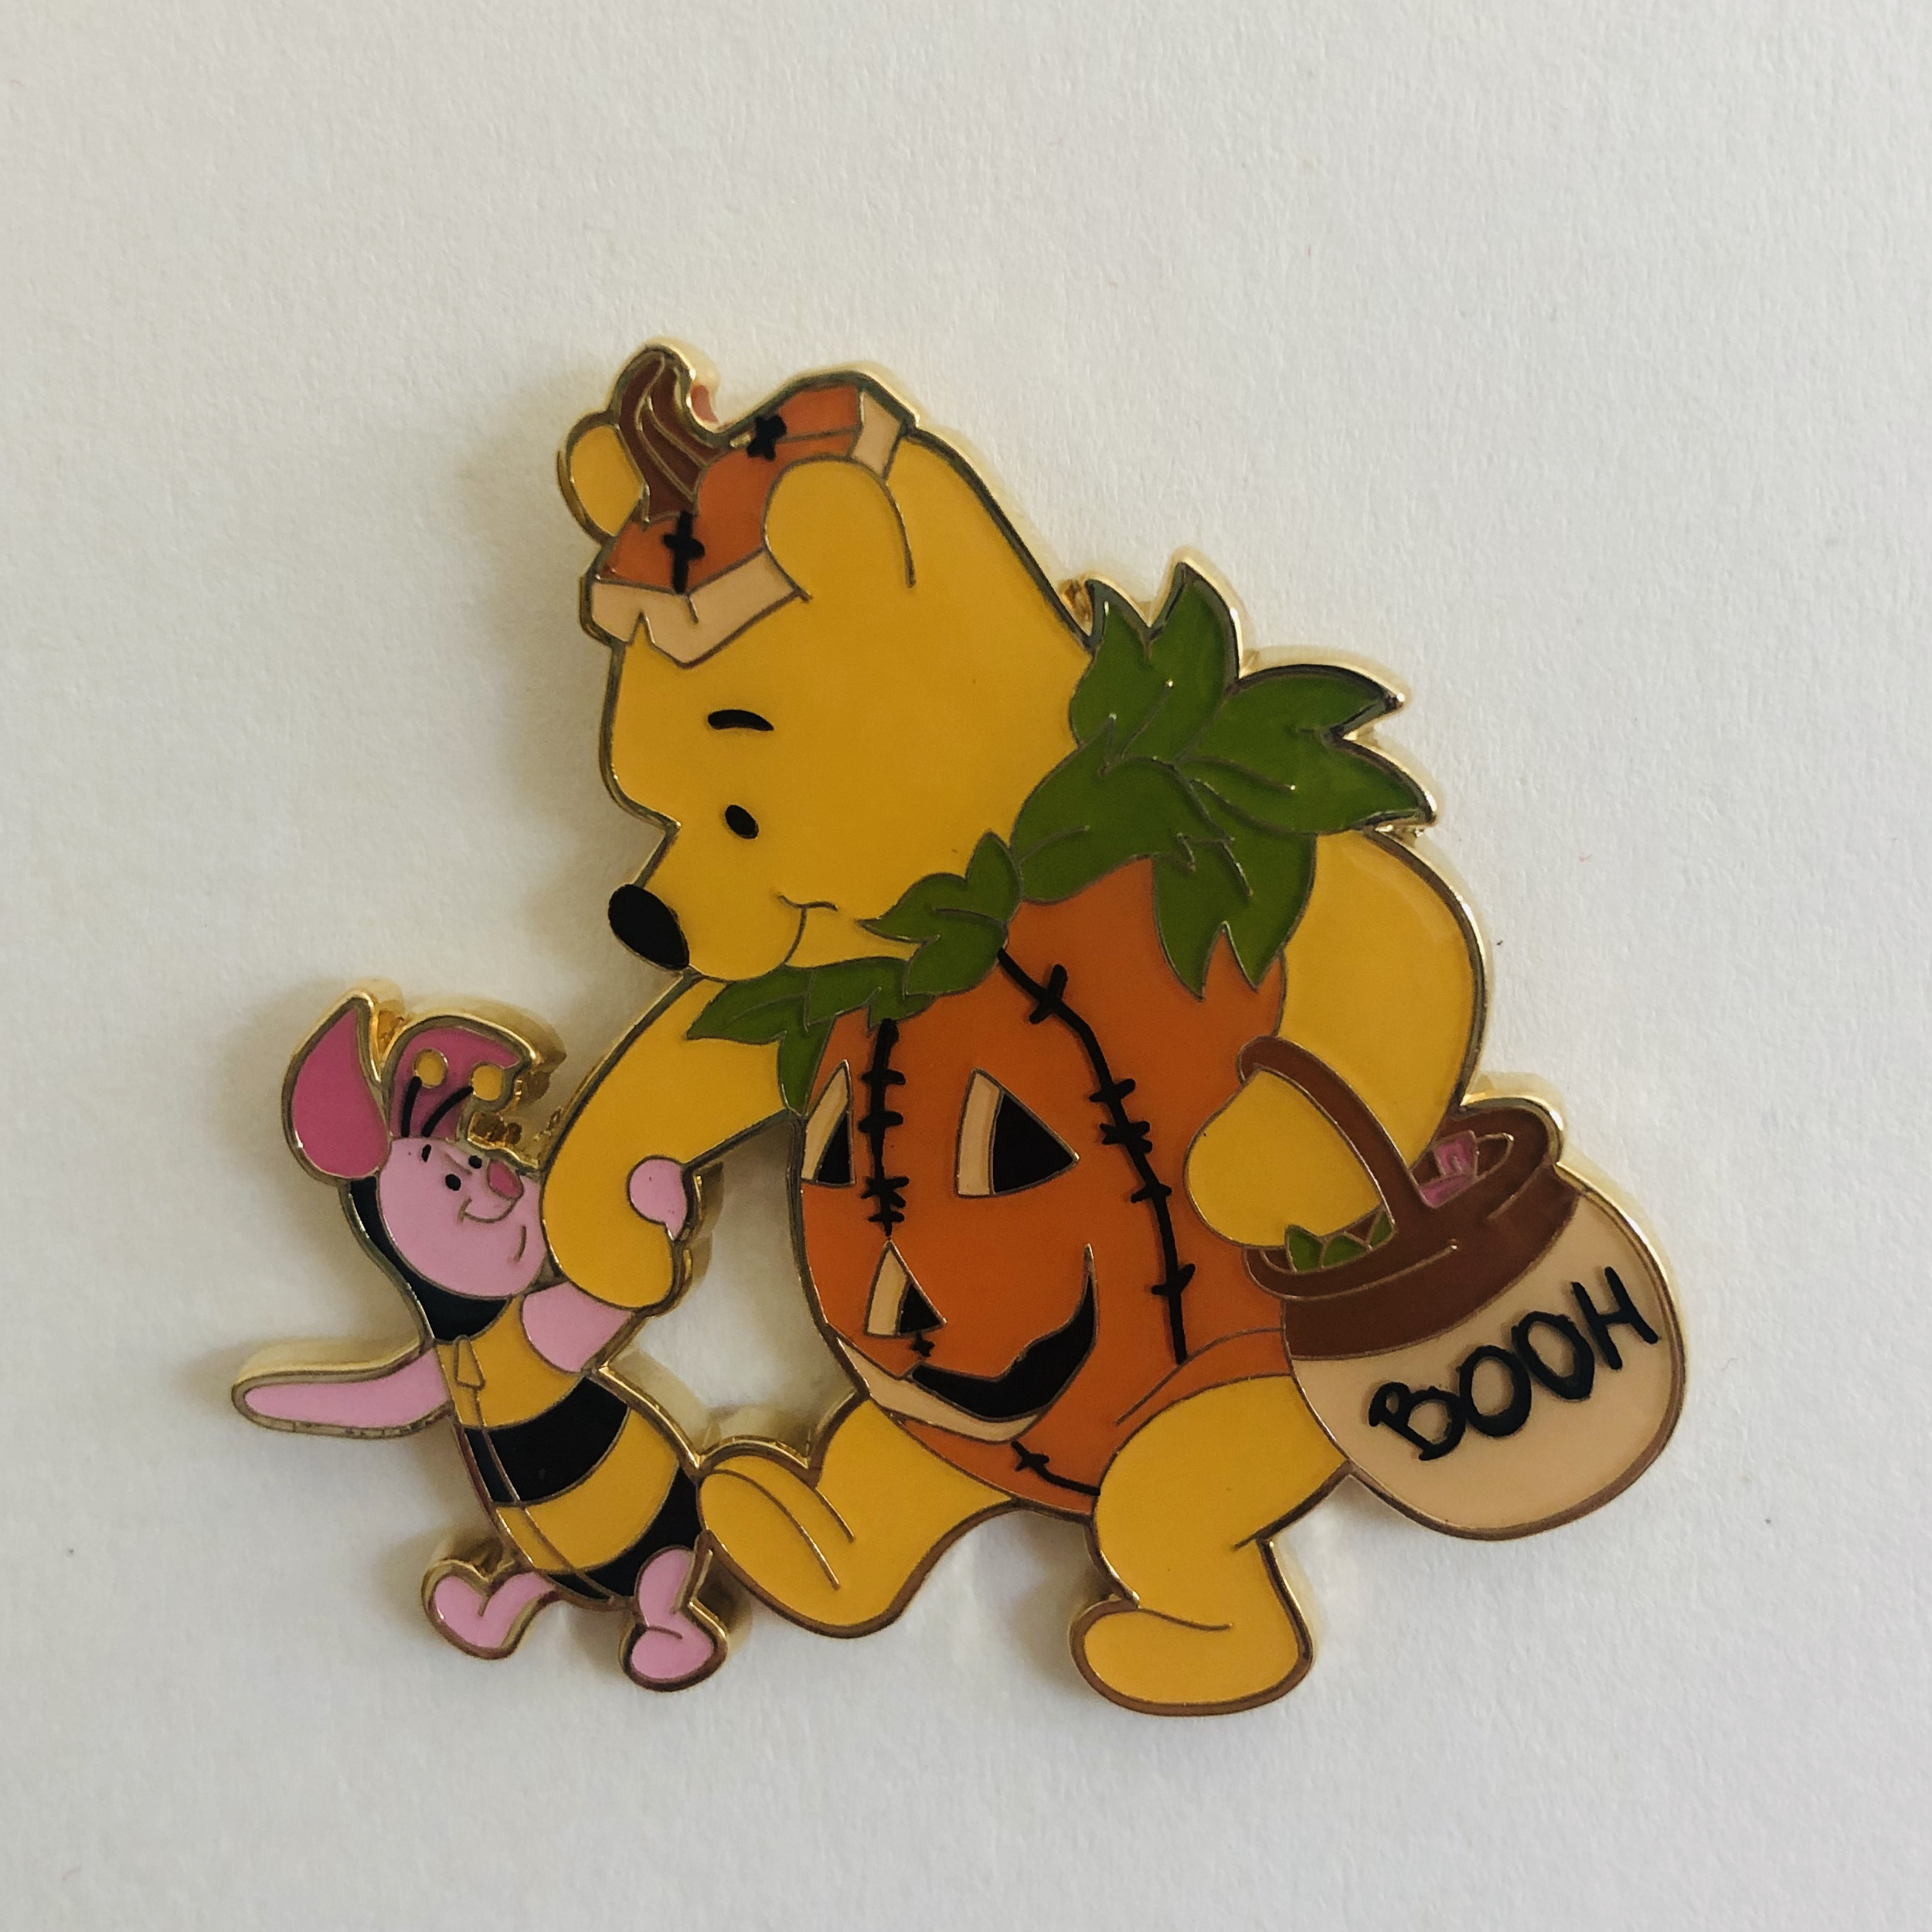 Winnie the Pooh and Piglet, Pooh is dressed as a pumpkin and Piglet as a bumble bee